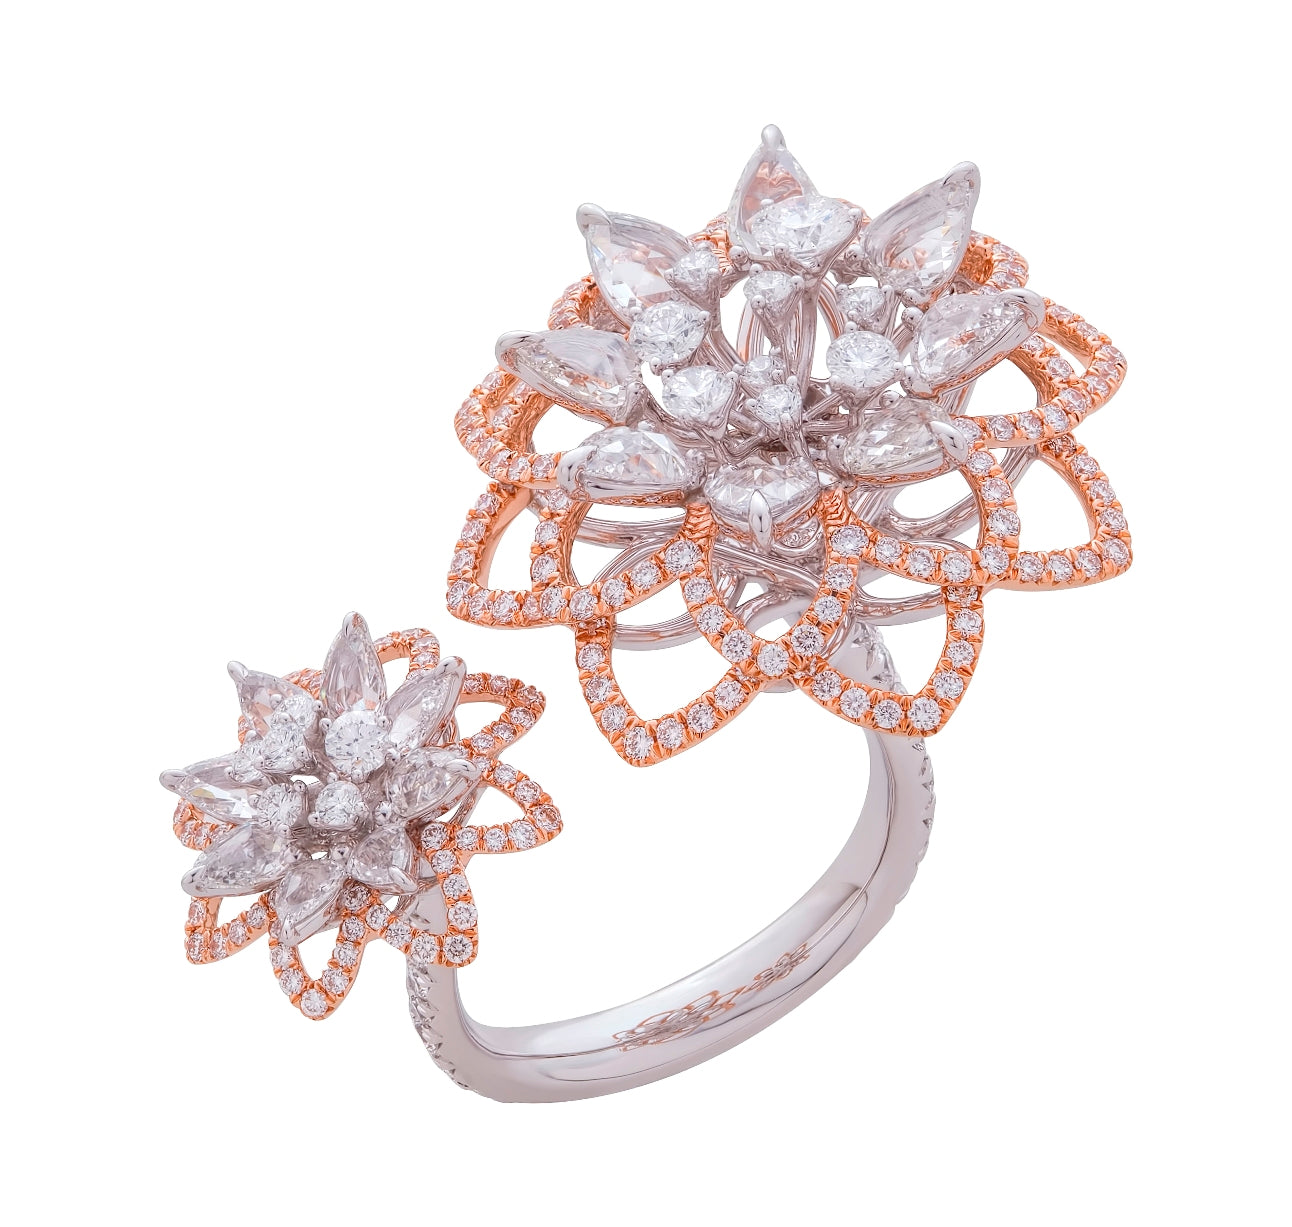 Simulated diamond statement cocktail ring, Rings - Ratnalij_jewels